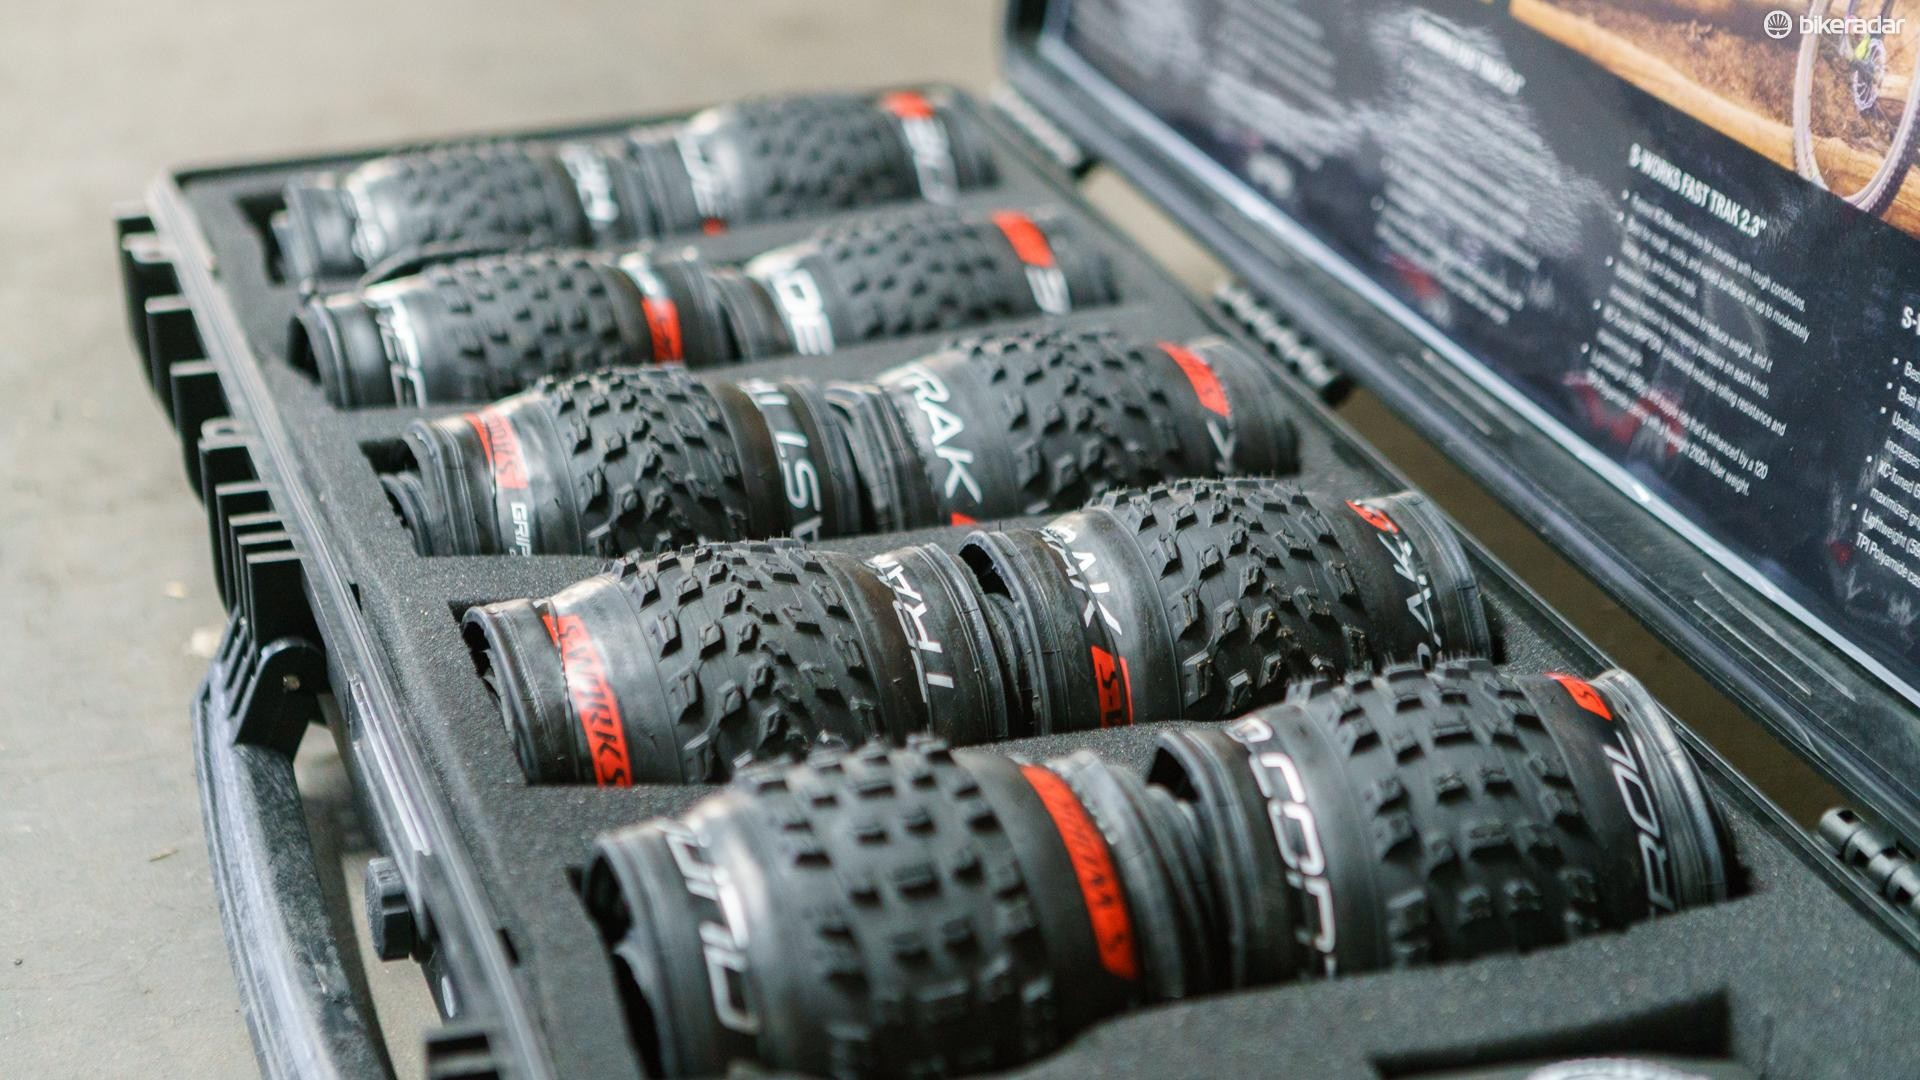 Specialized's new XC tyres